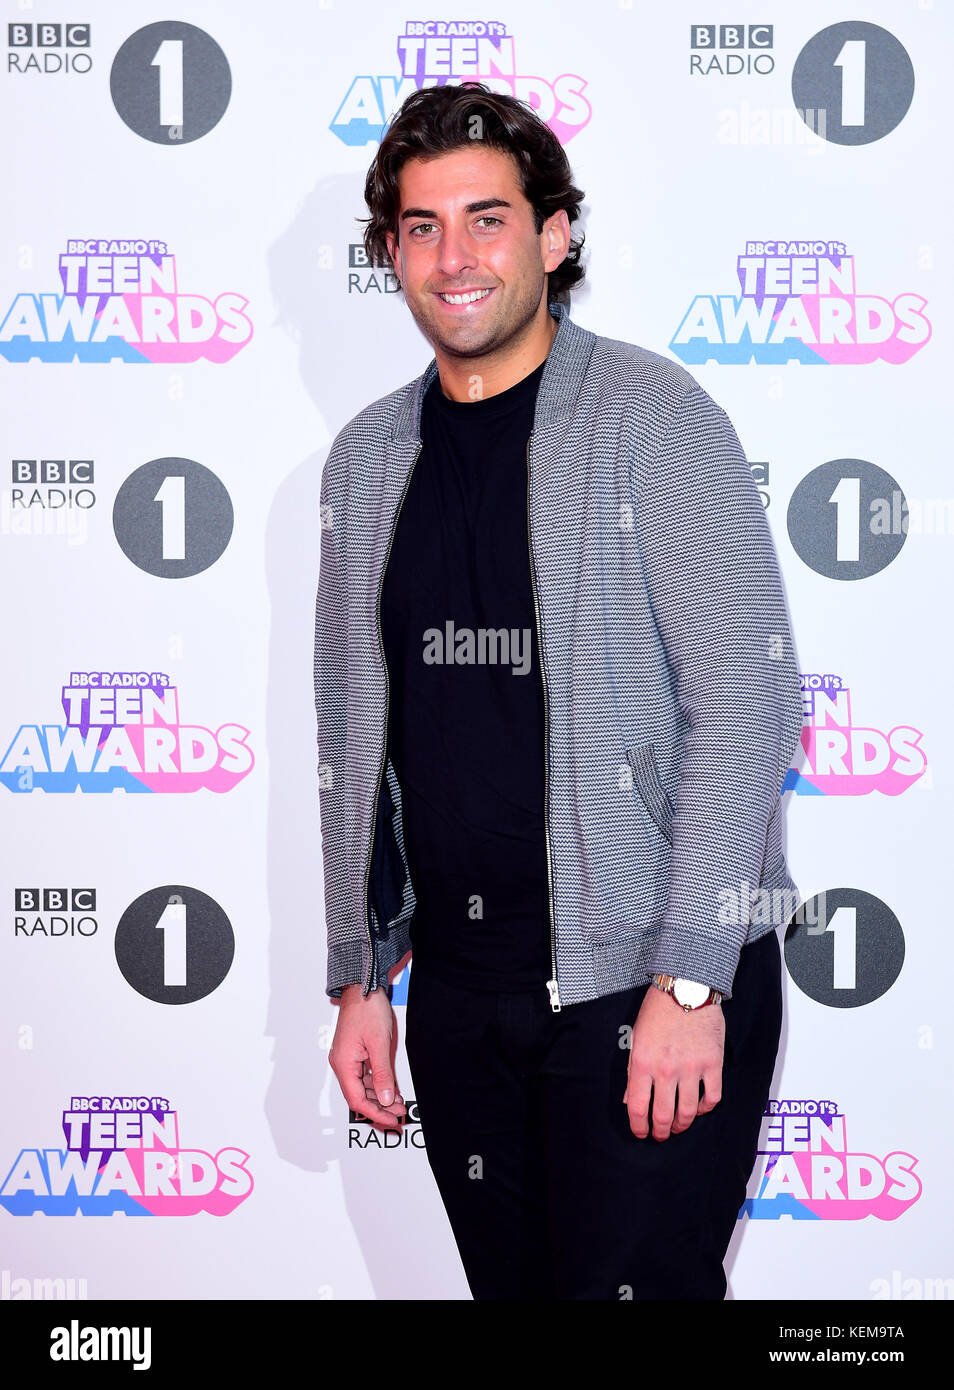 james 'arg' argent attending bbc radio 1's teen awards, at the sse